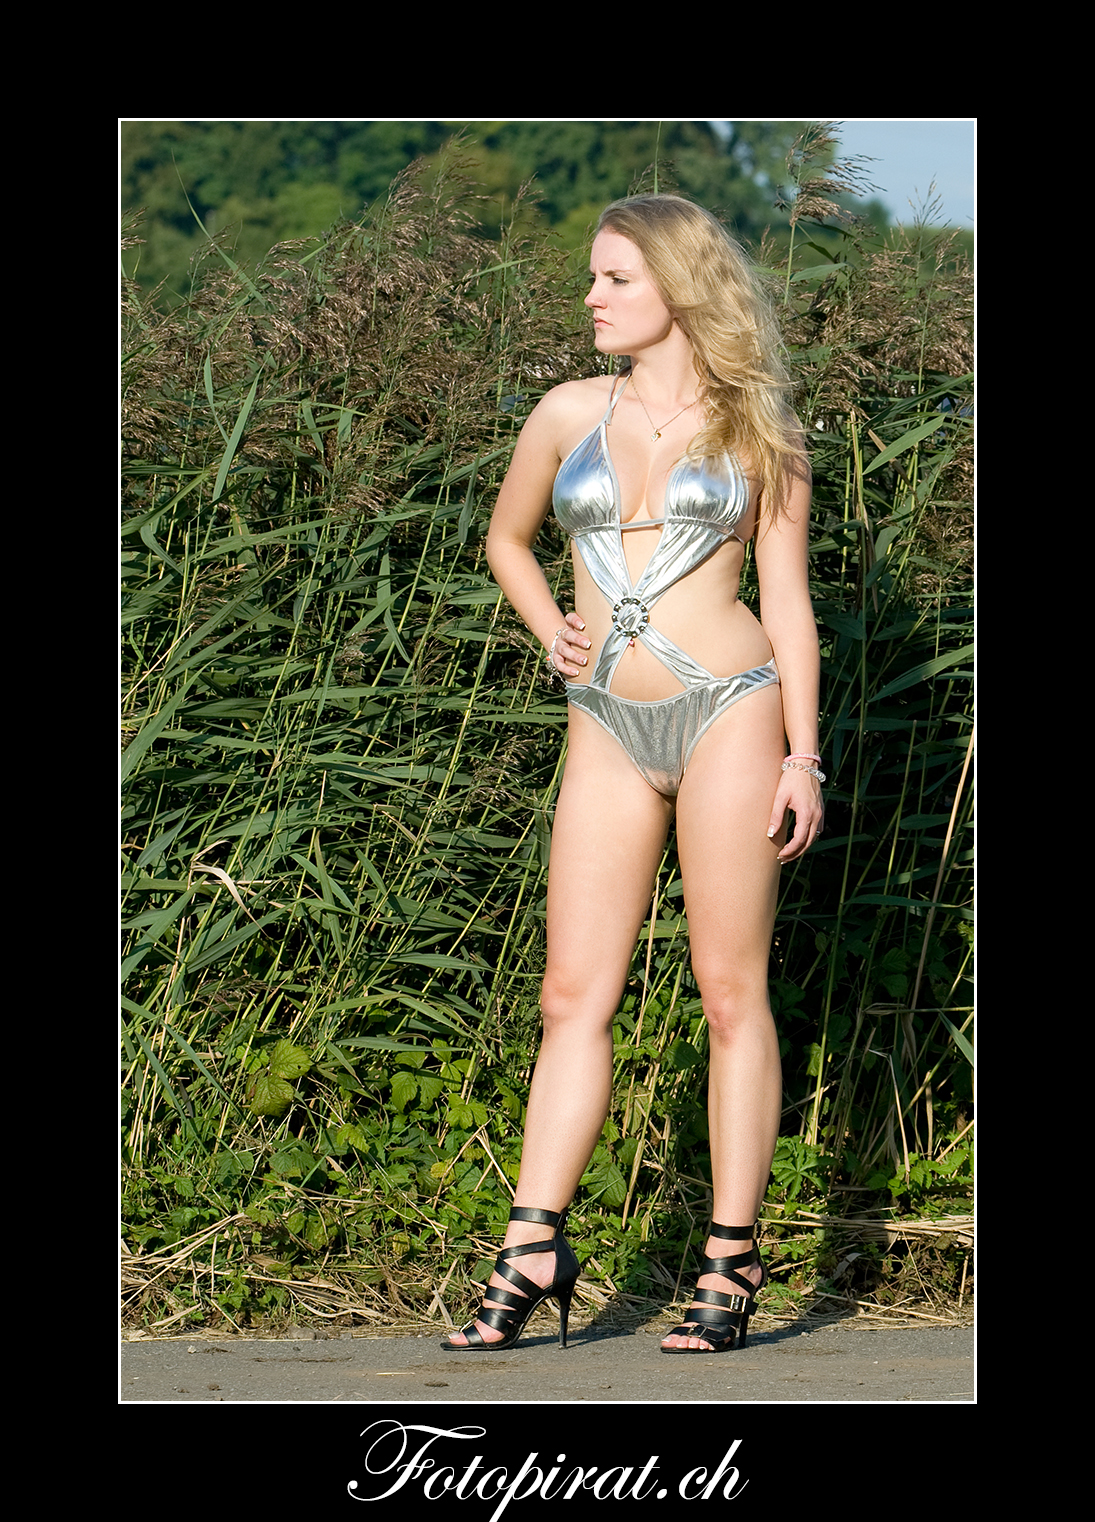 Fotoshooting, On Location, blondes Fotomodel, Modelagentur, Sportmodel, Monokini, High Heels